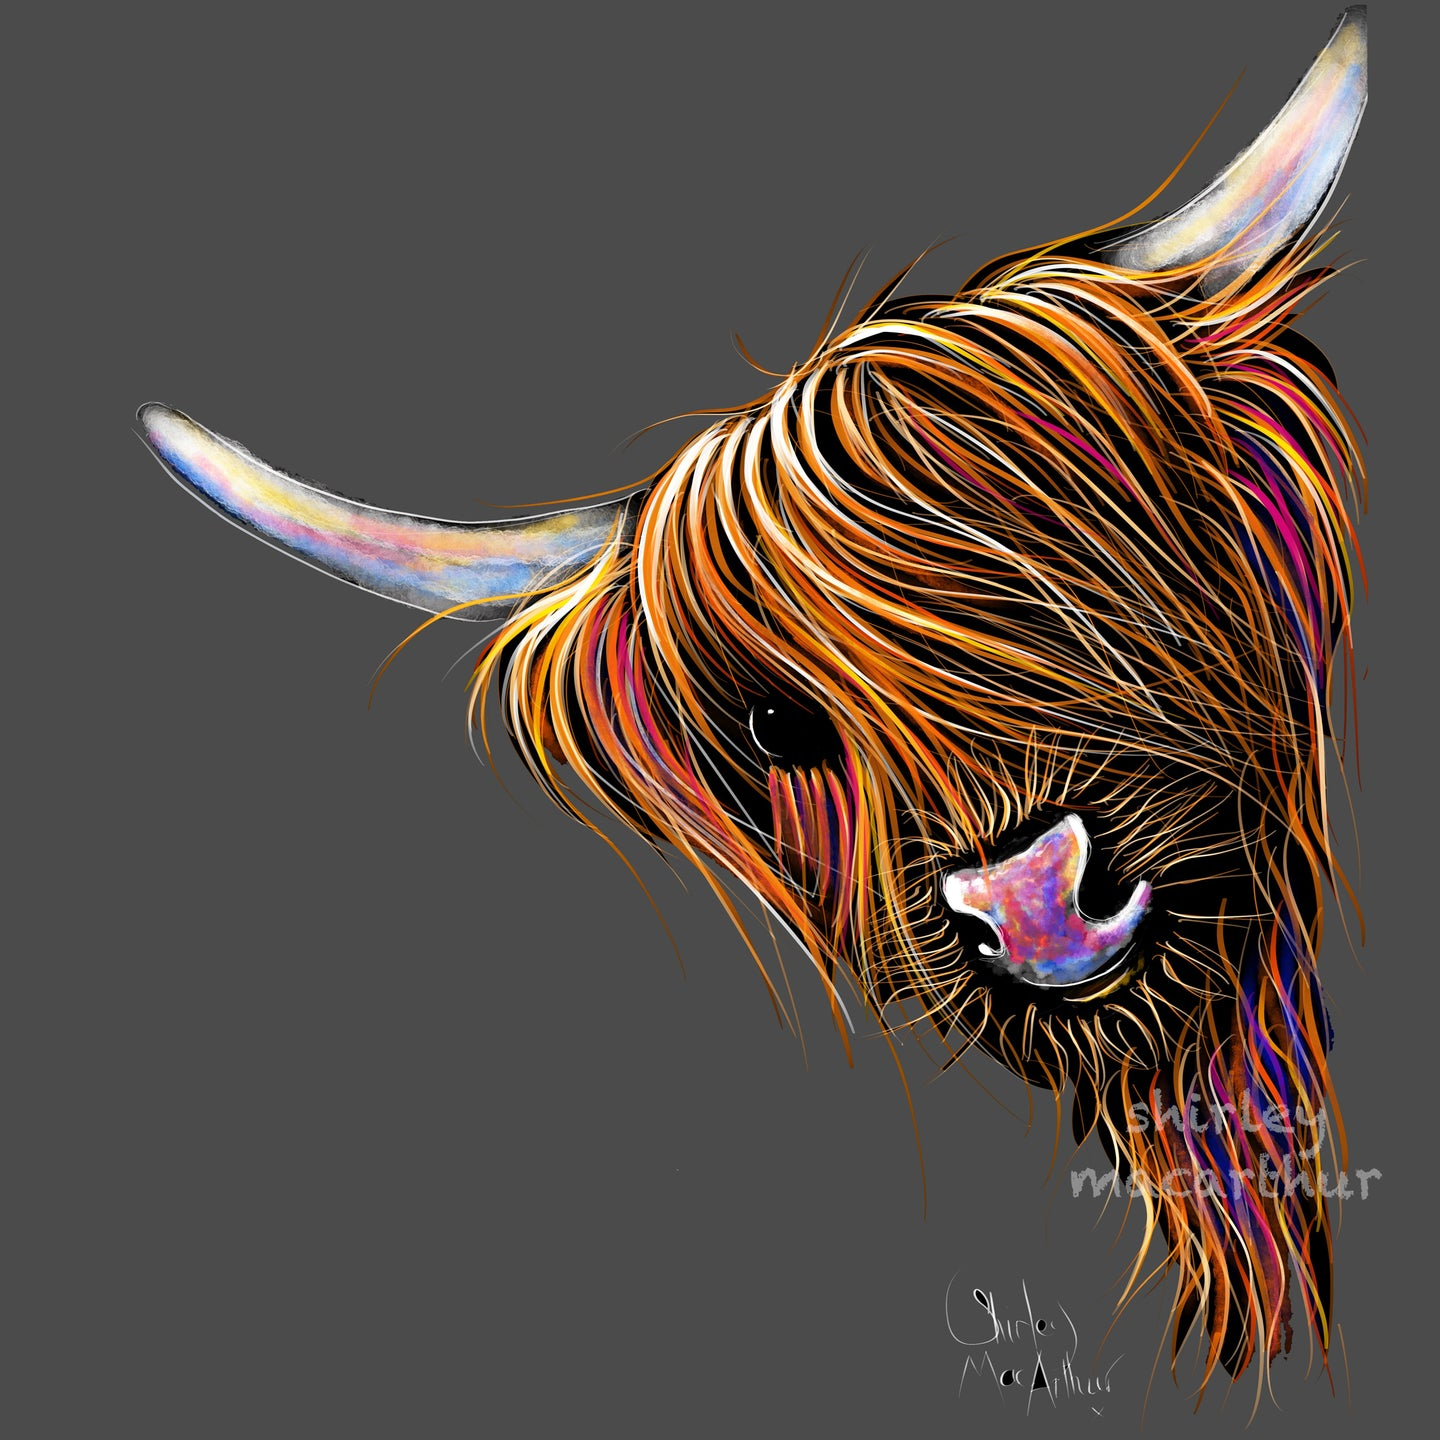 Highland Cow Prints 'Noodles on Grey' by Shirley MacArthur